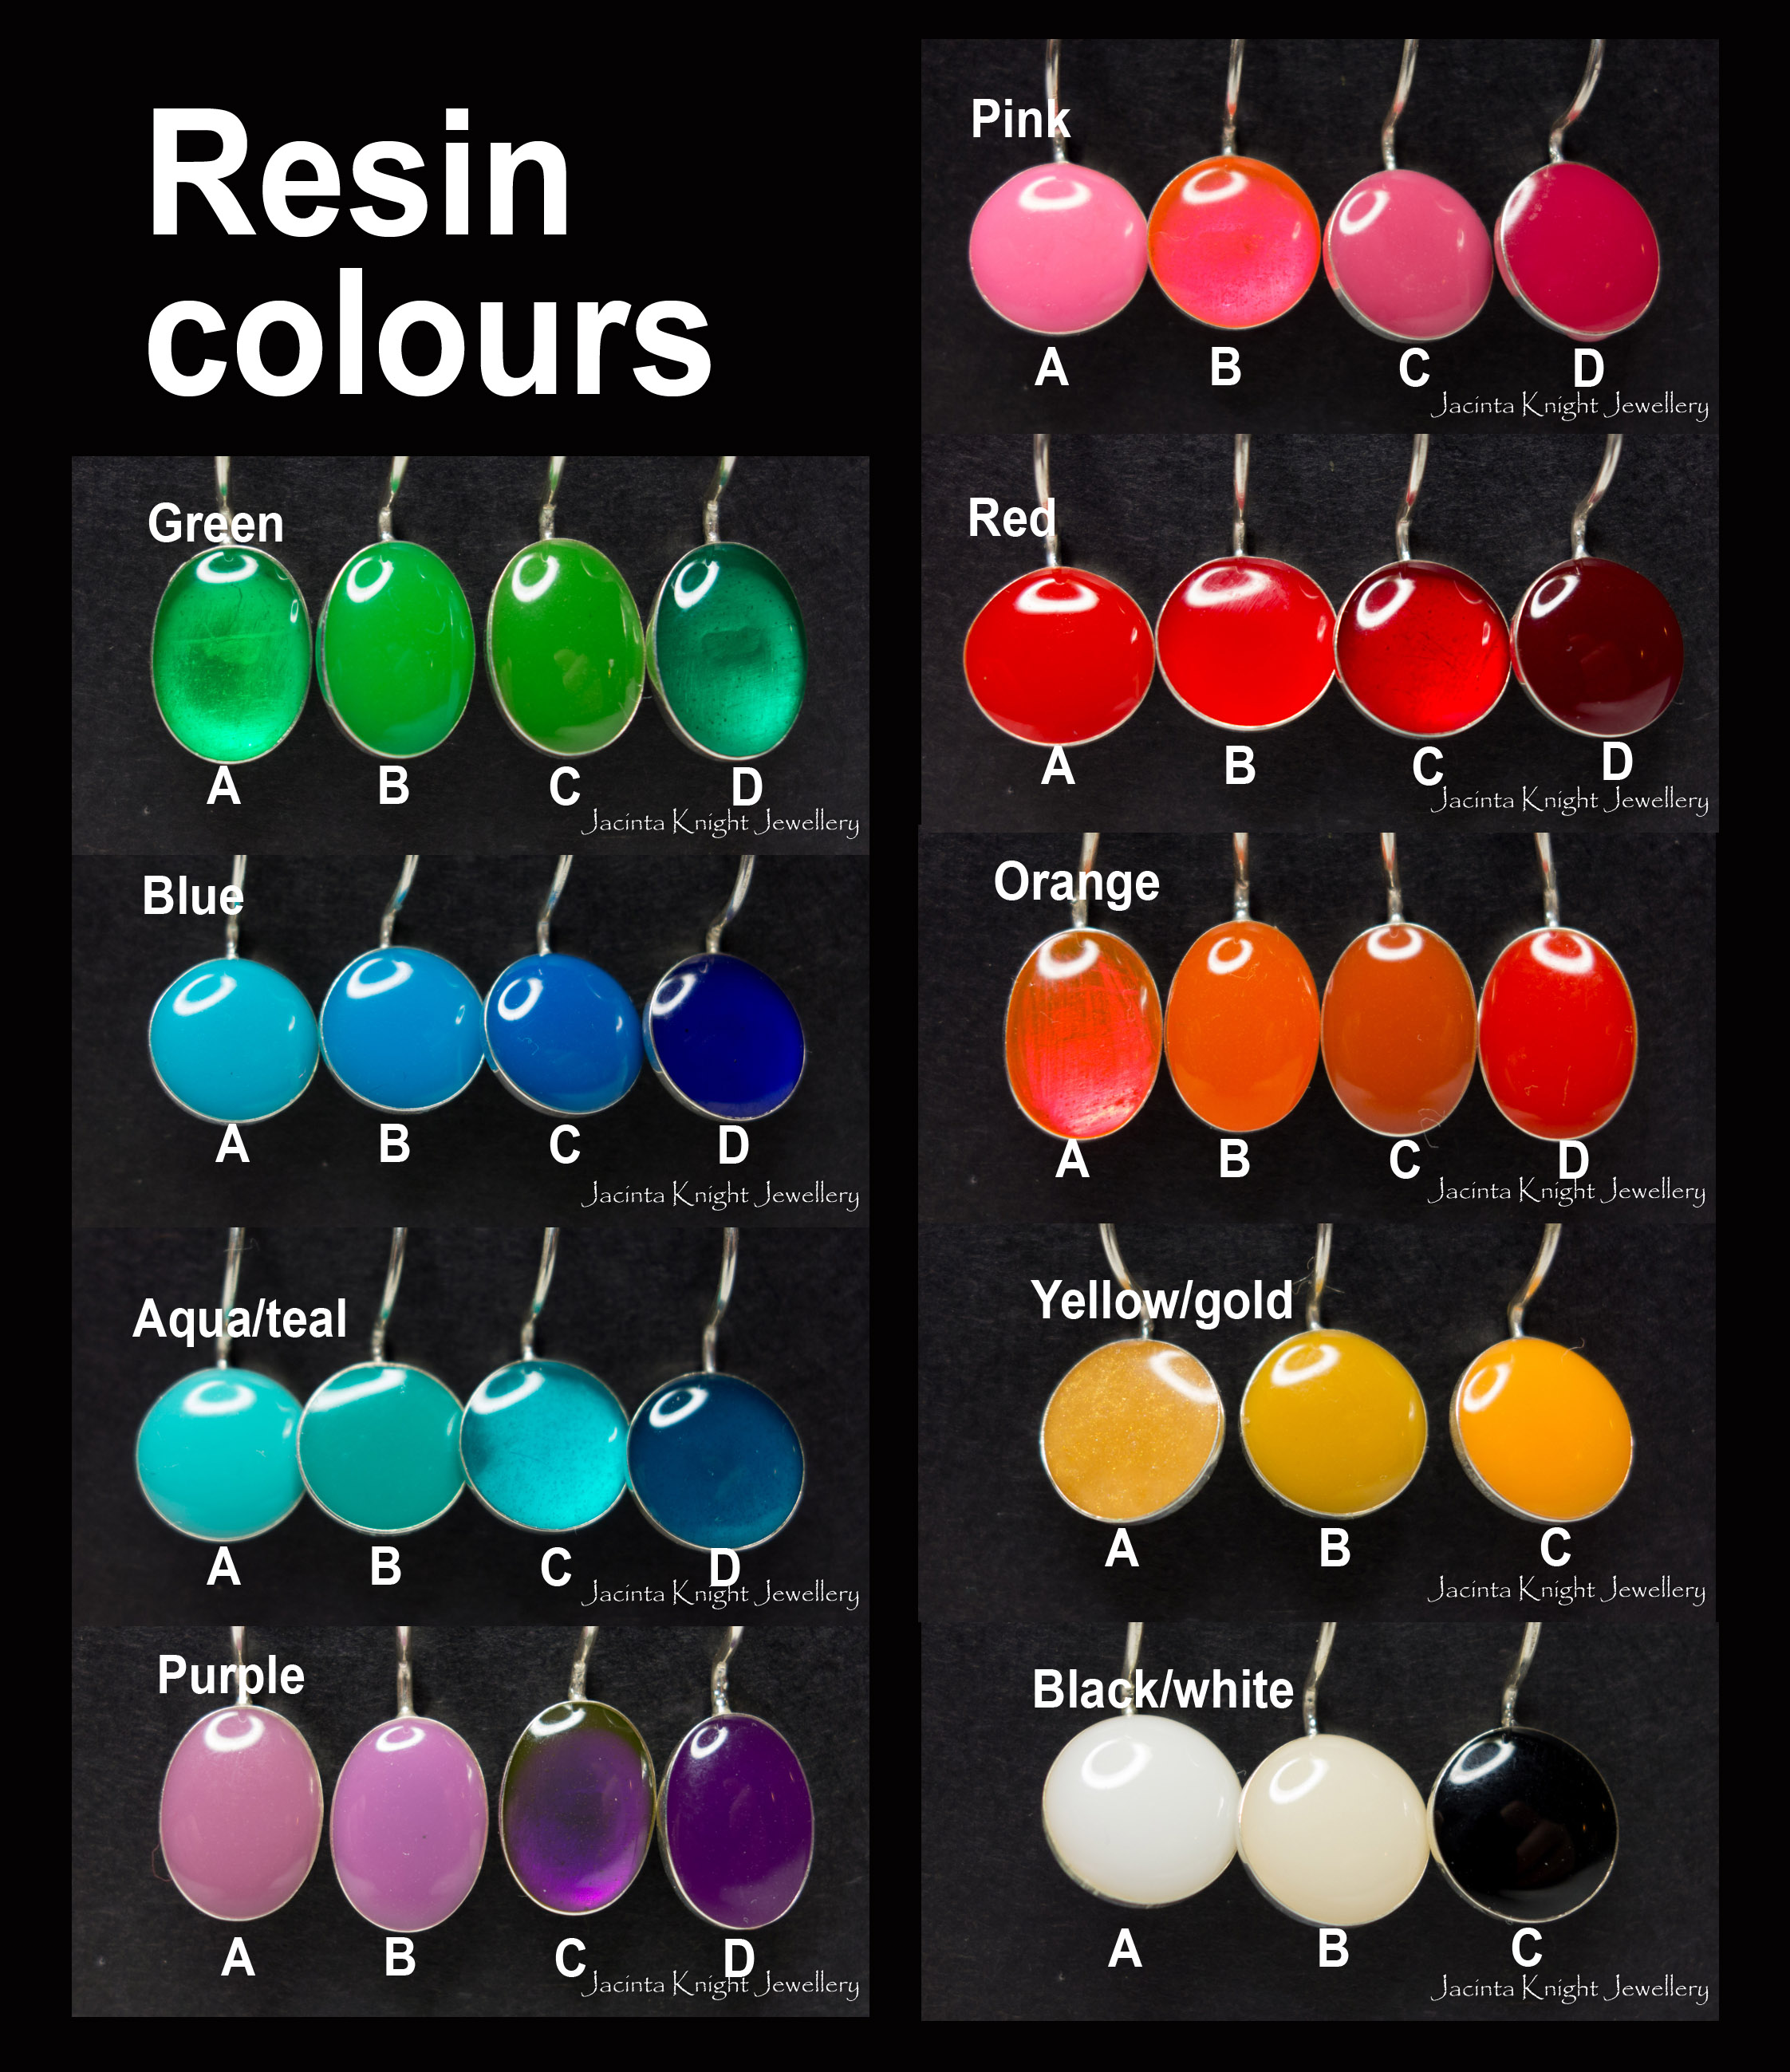 Resin colours